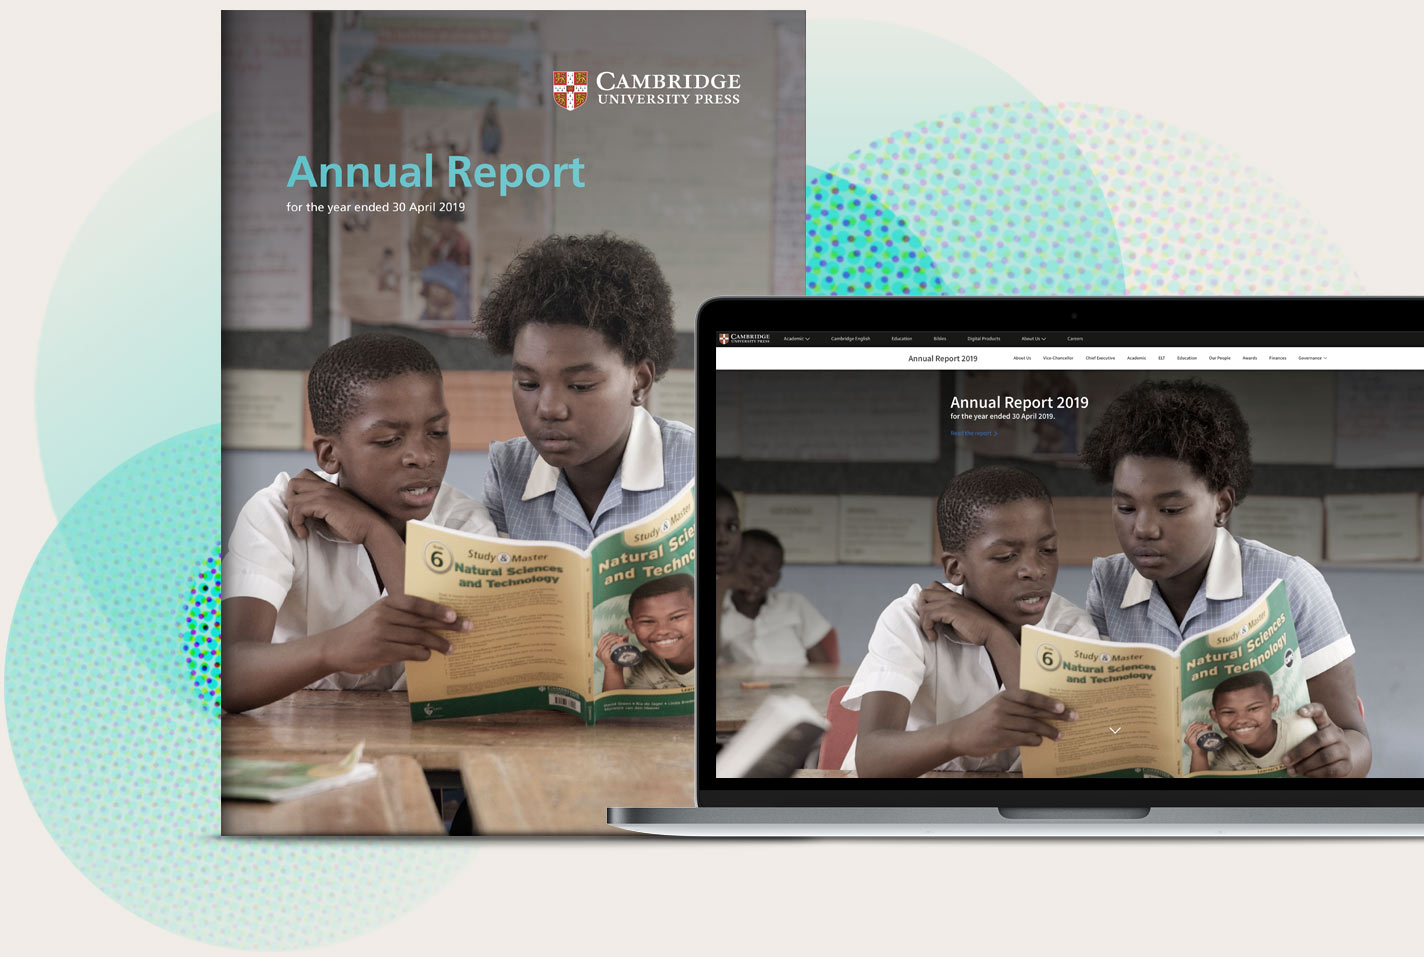 Annual Report for the year ended 30 April 2019